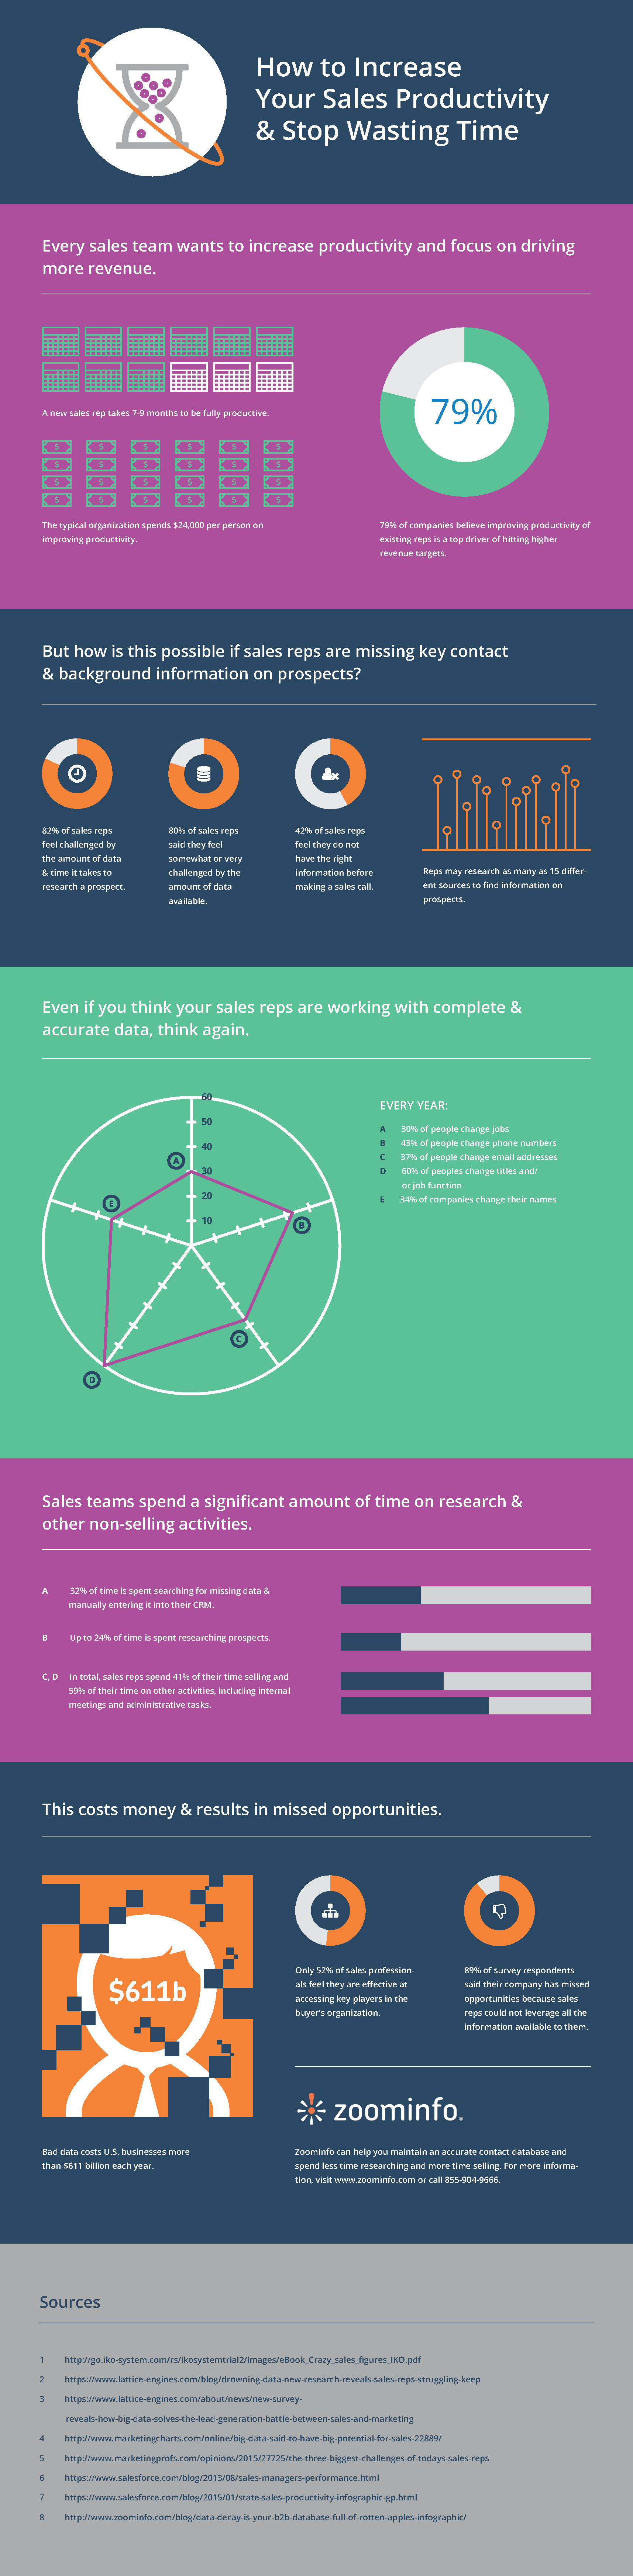 sales productivity infographic